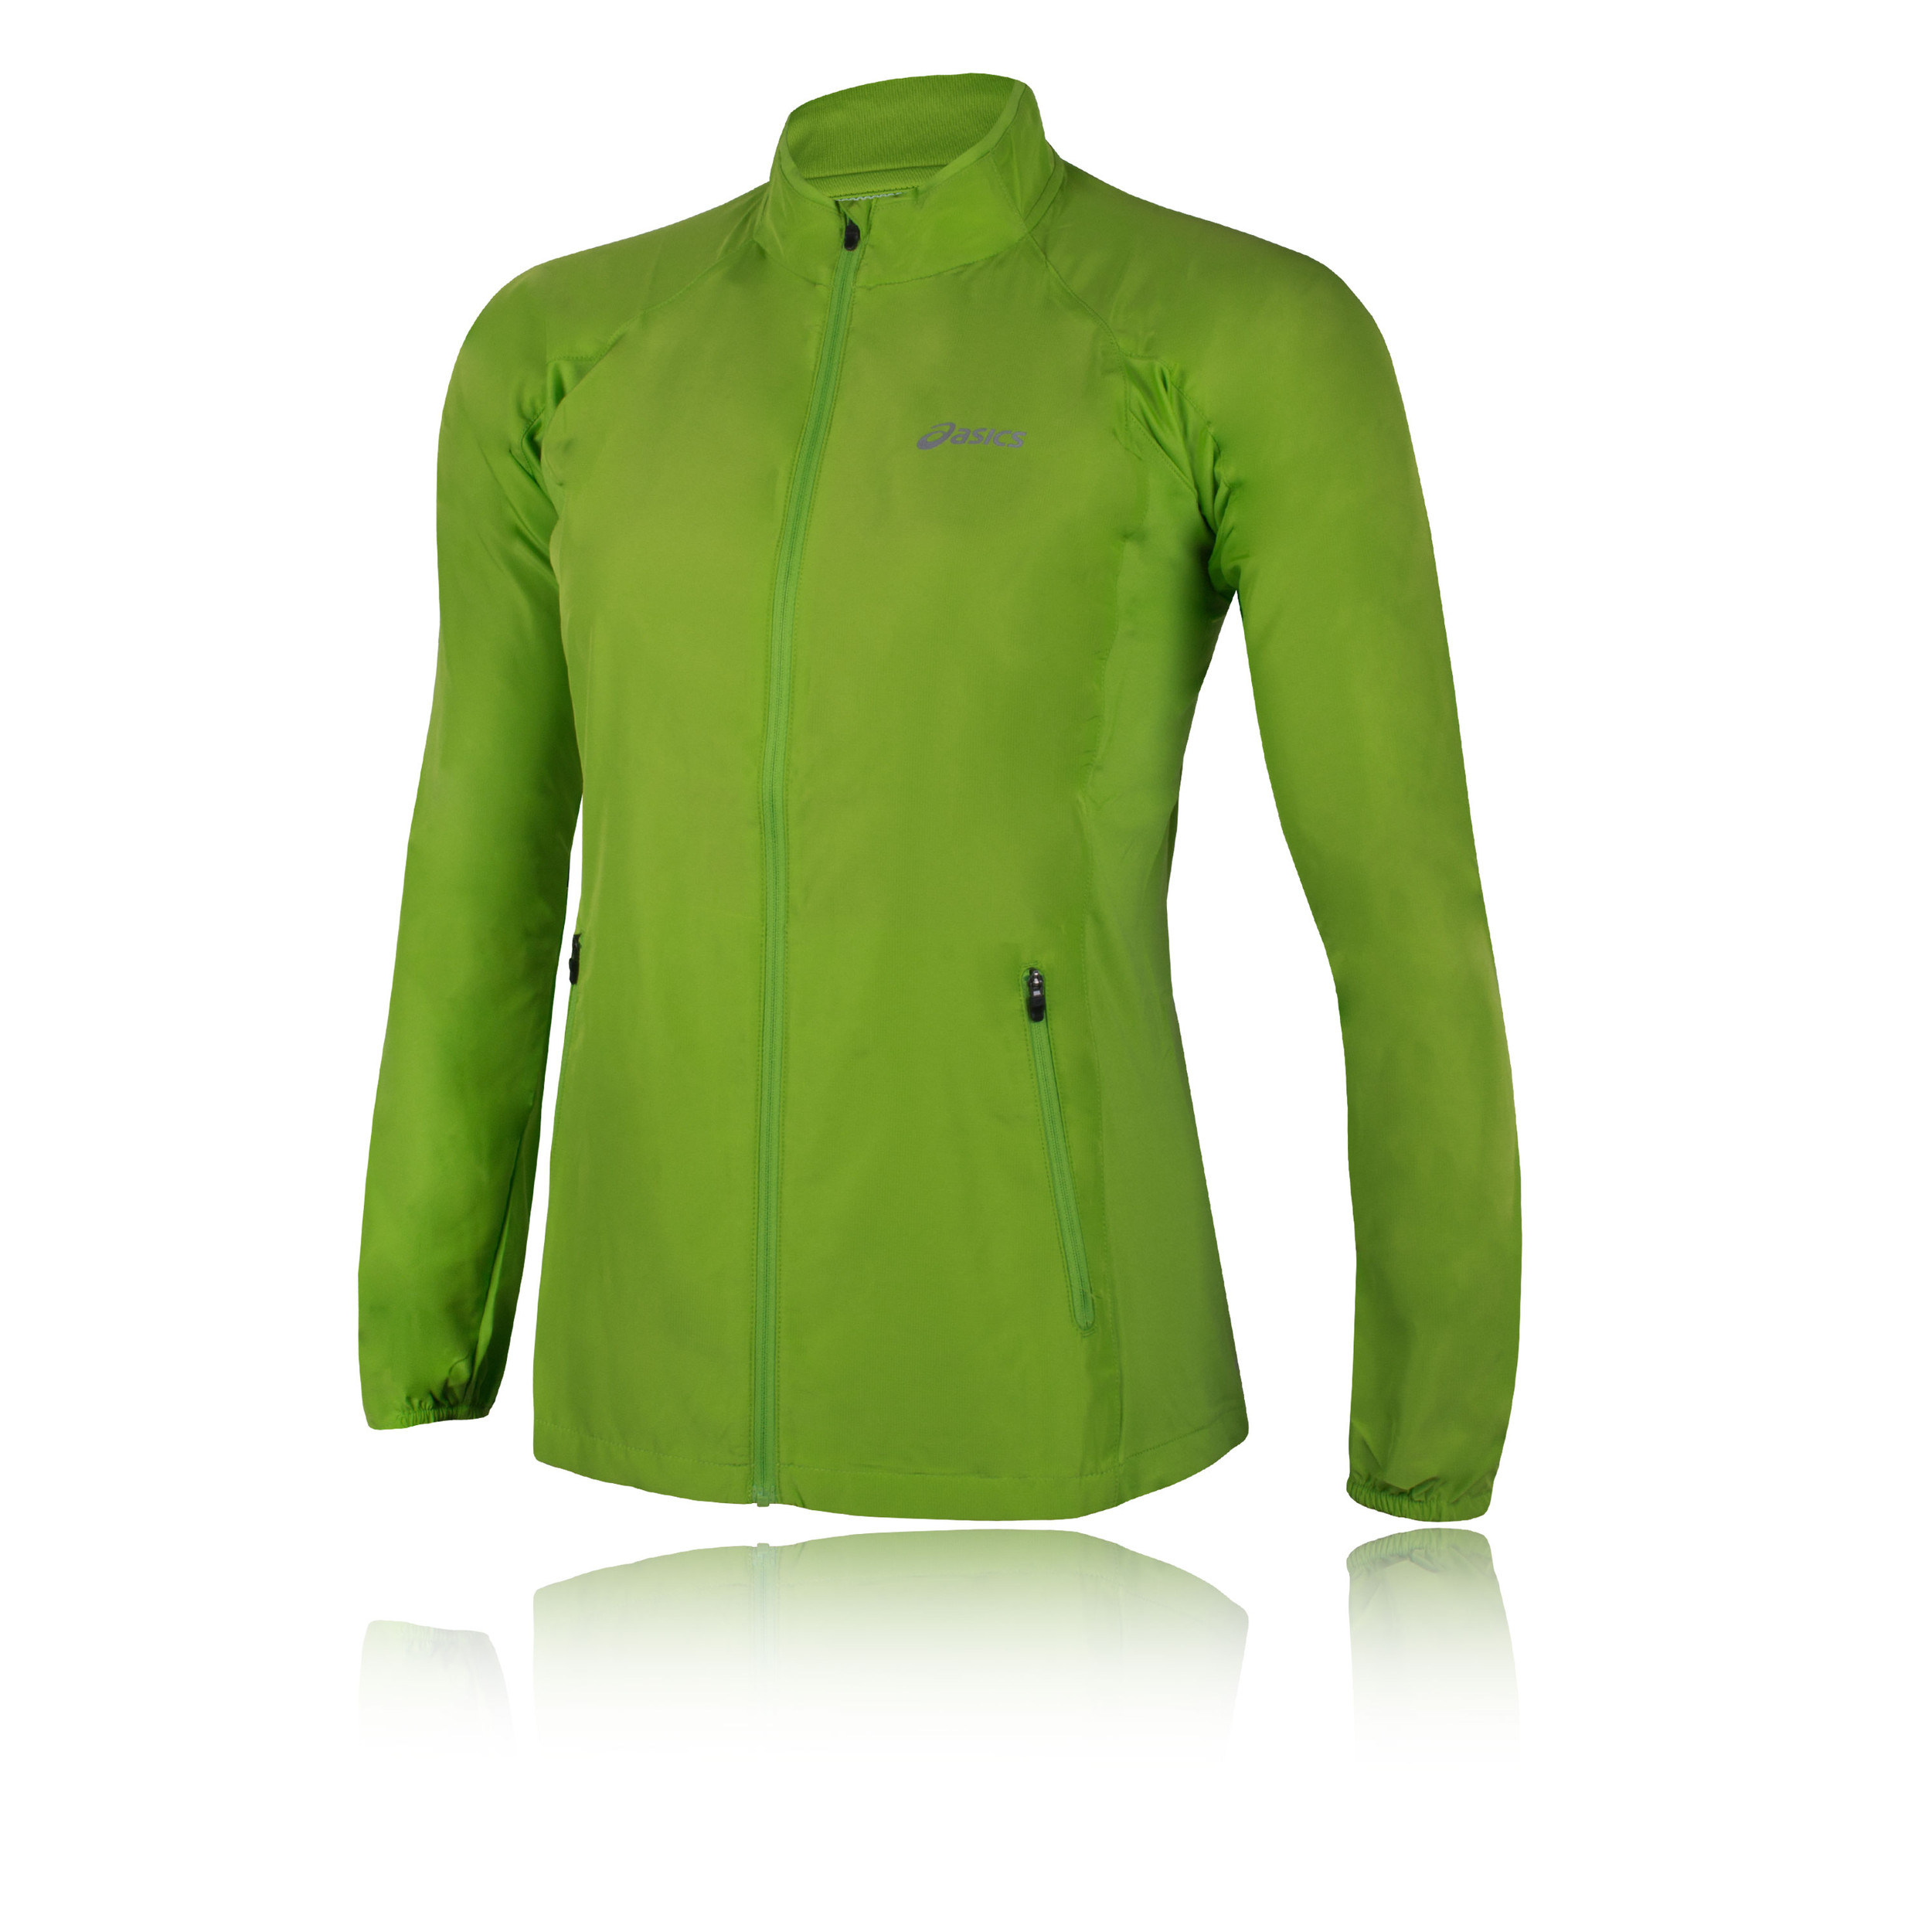 f06f28539af3 Details about Asics Womens Woven Running Jacket Top Long Sleeve Casual  Clothing Green